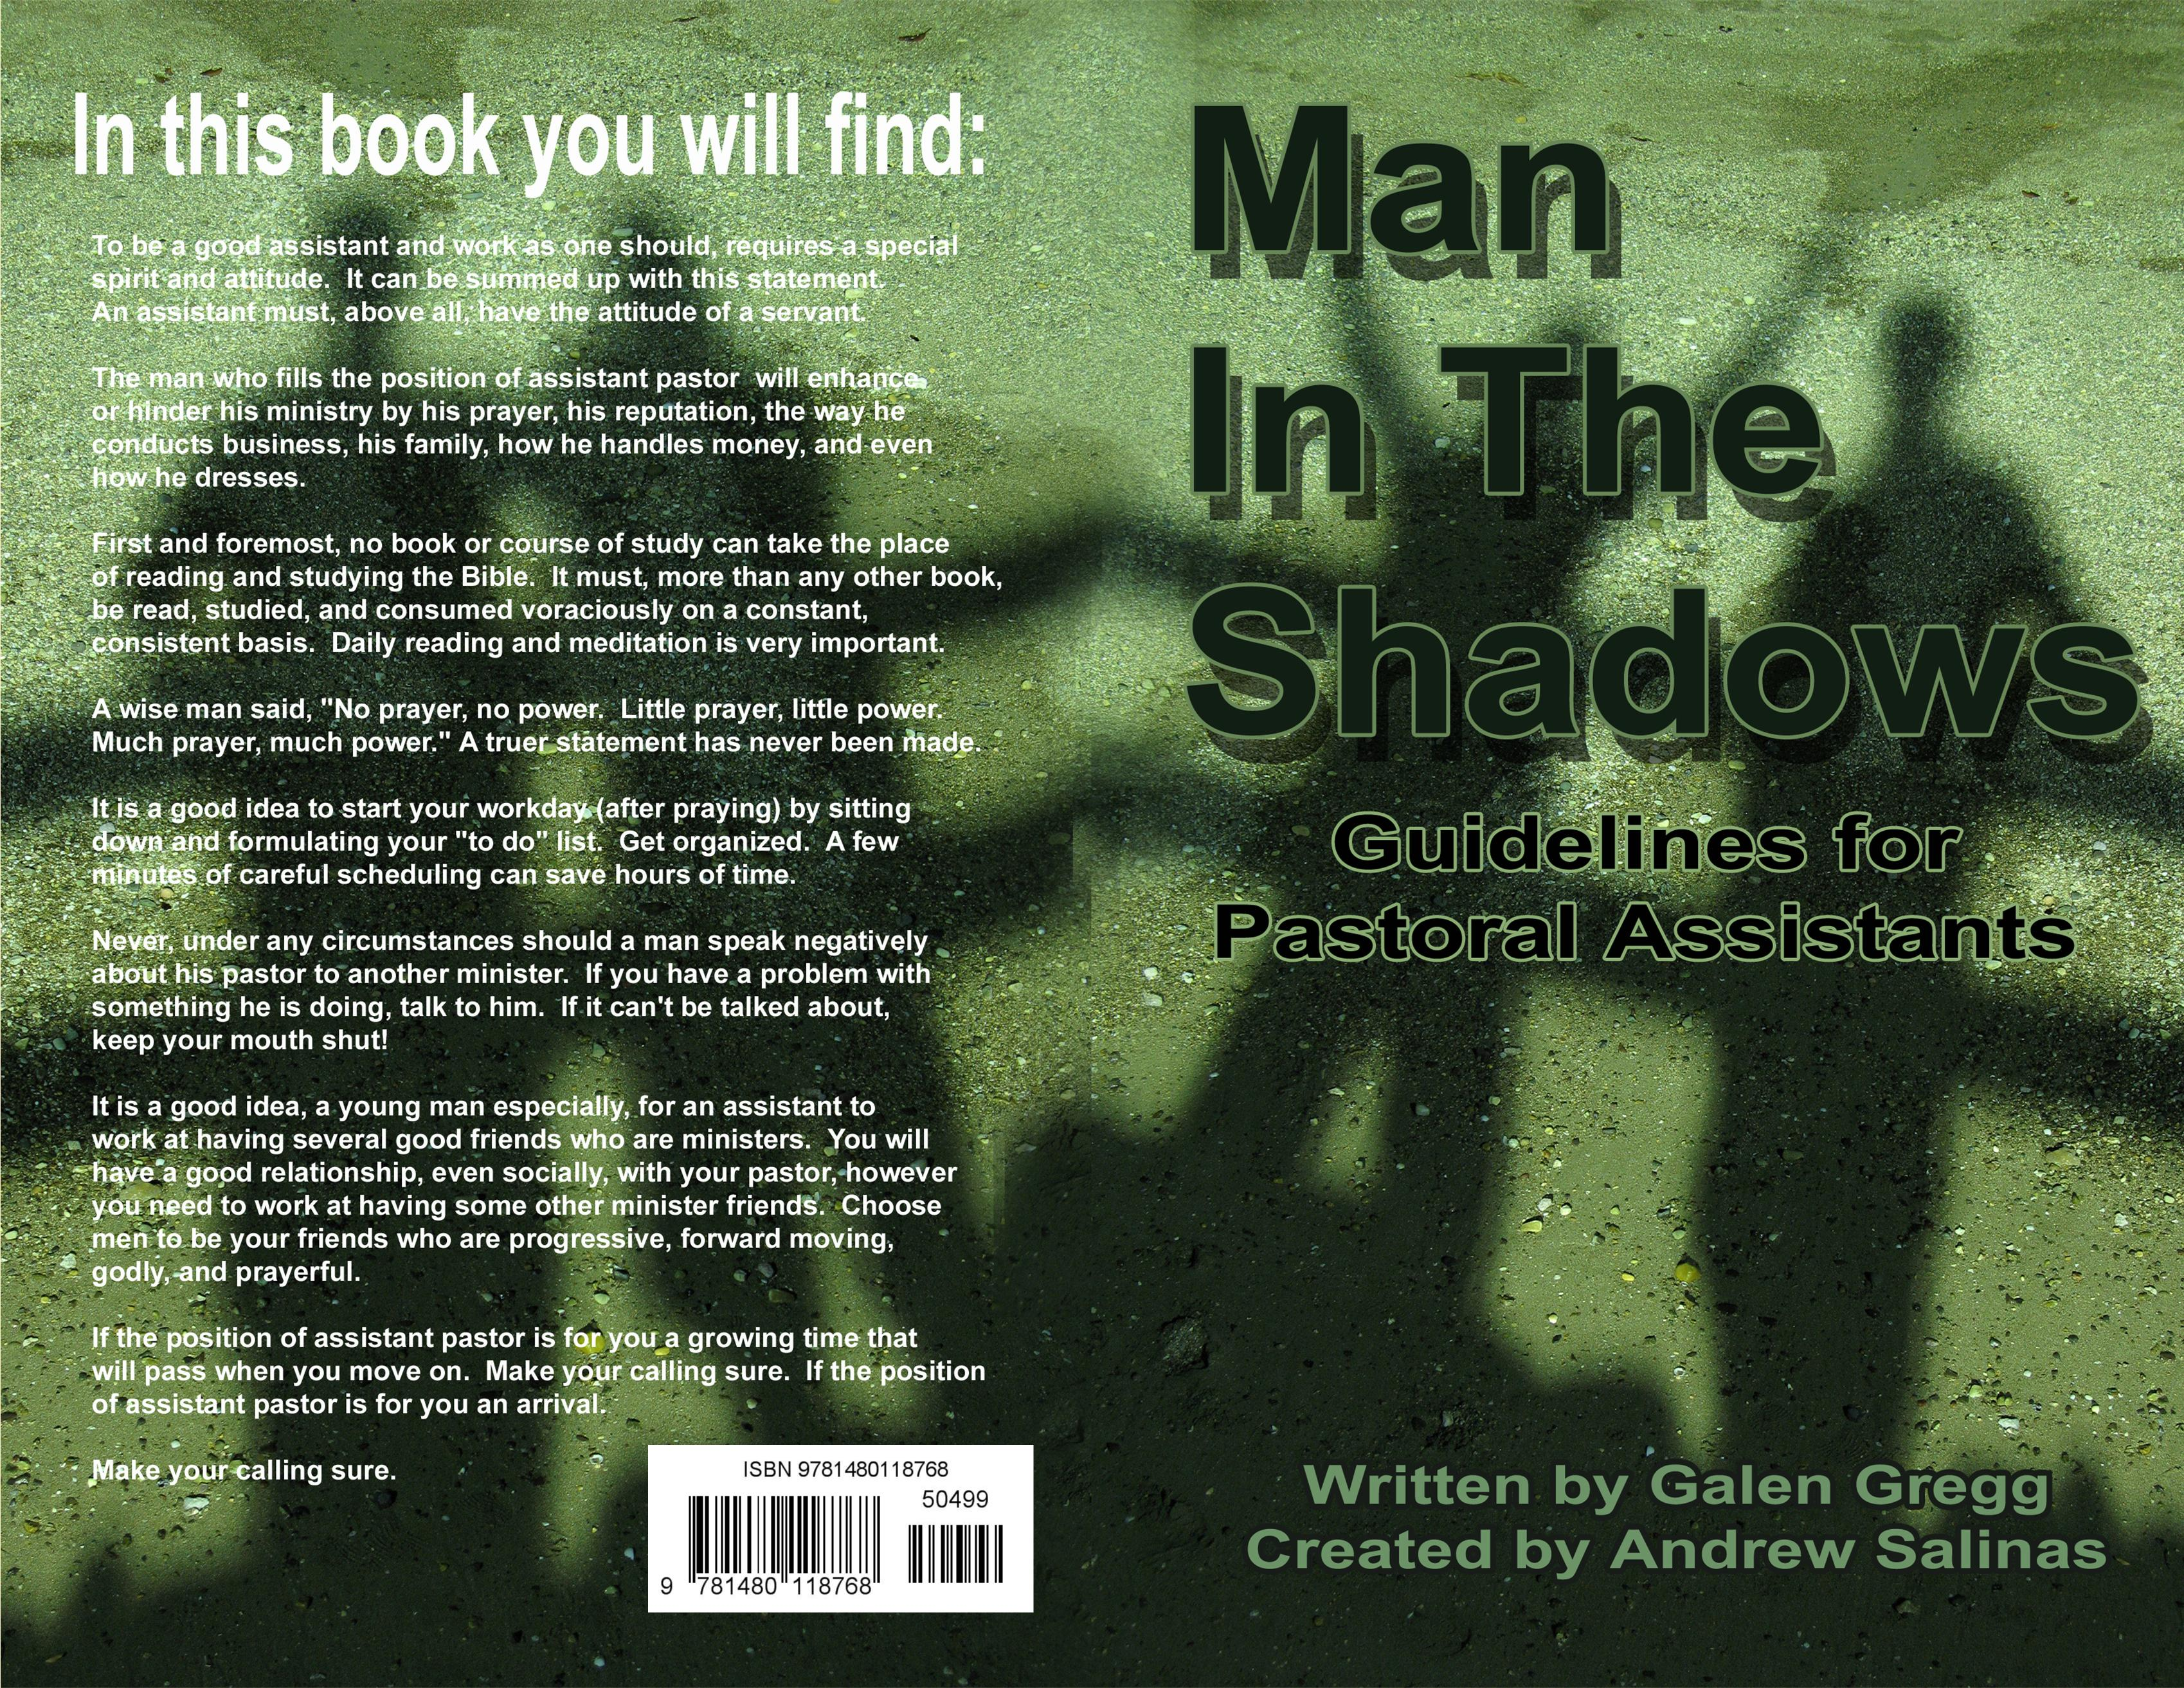 Man In The Shadows cover image